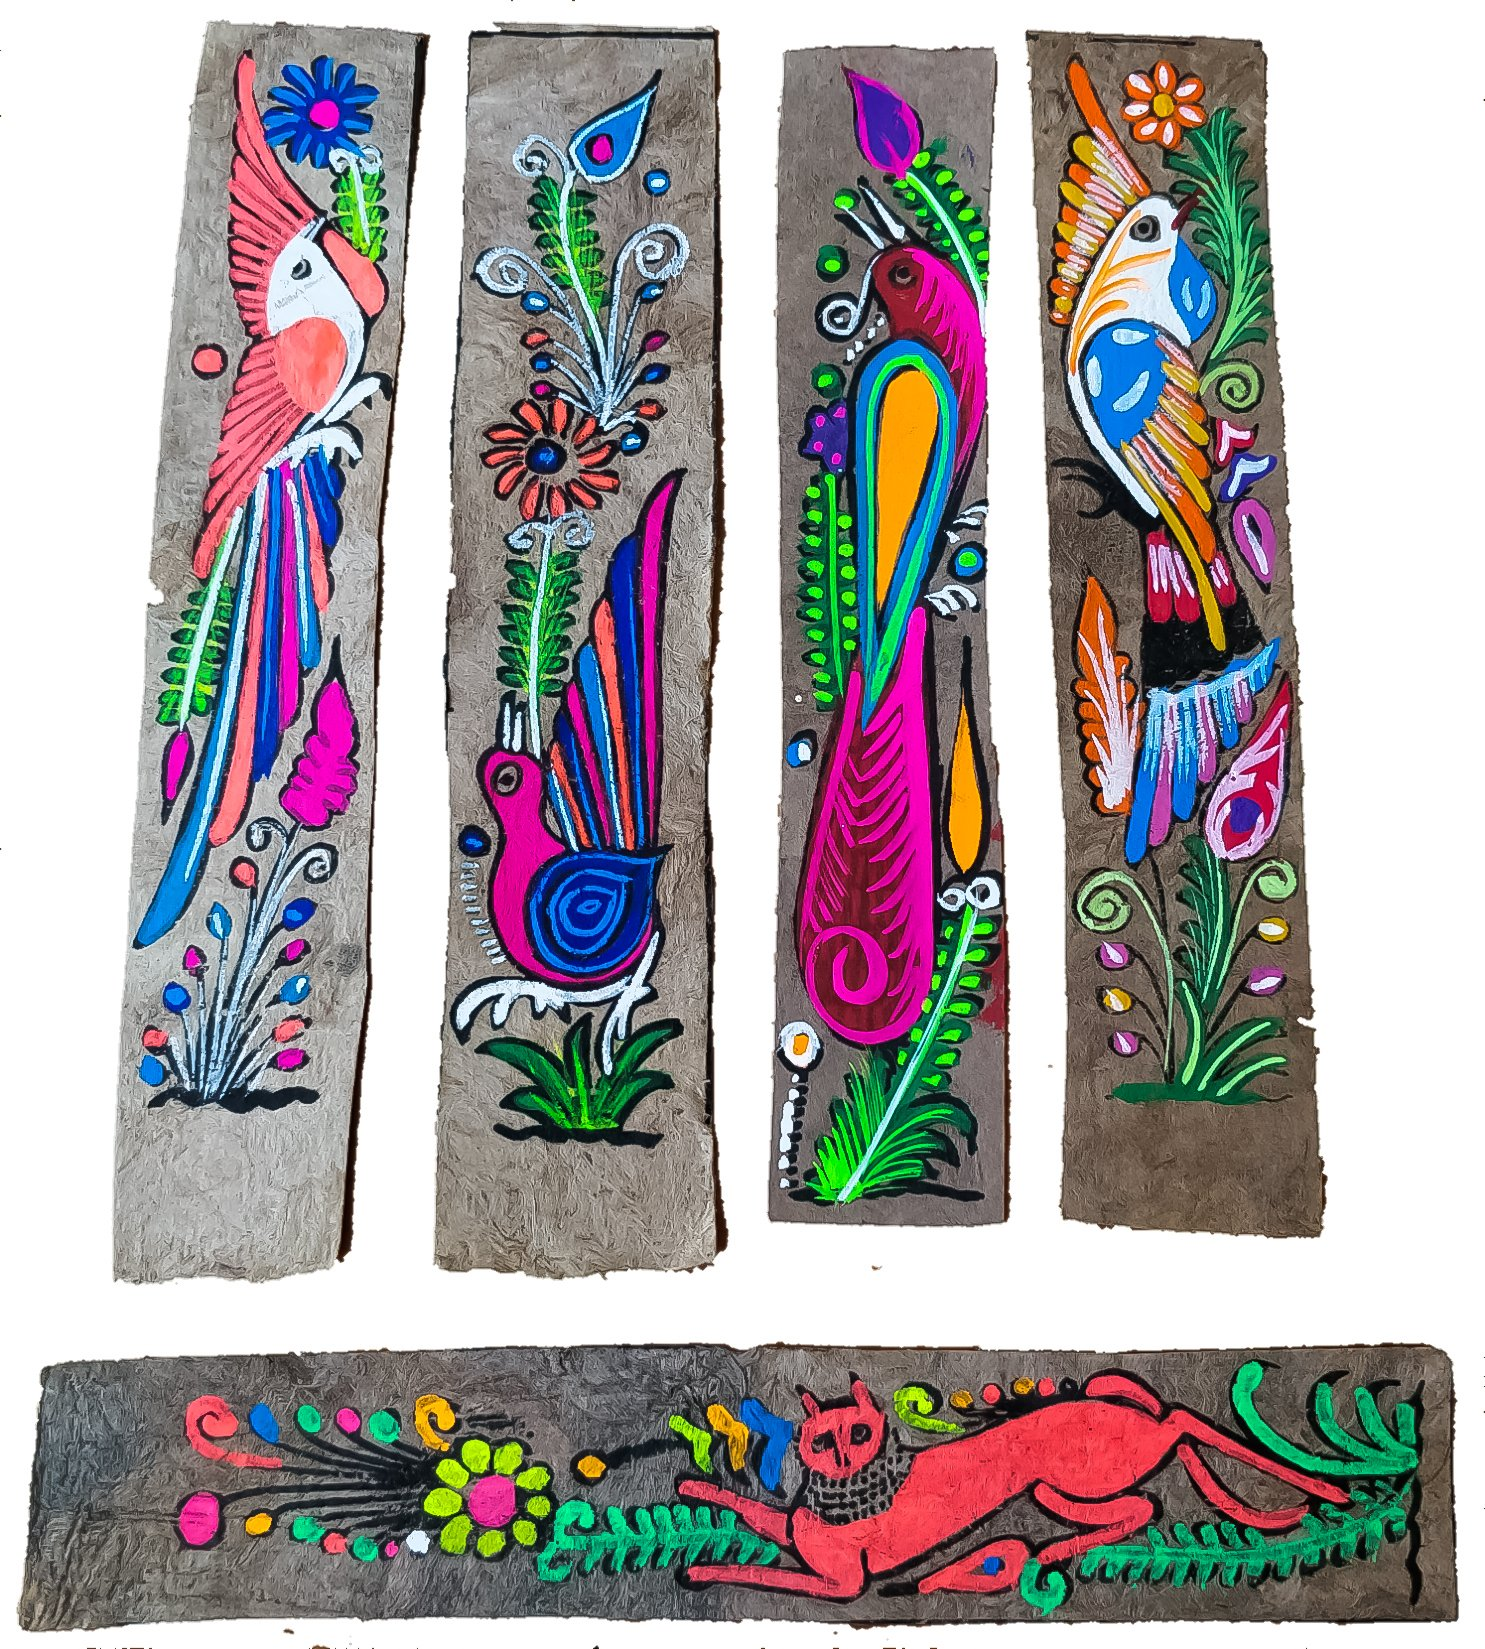 Unique Amate Bookmarks 5 pcs Hand Painted Mexican Art for School Home Office Library